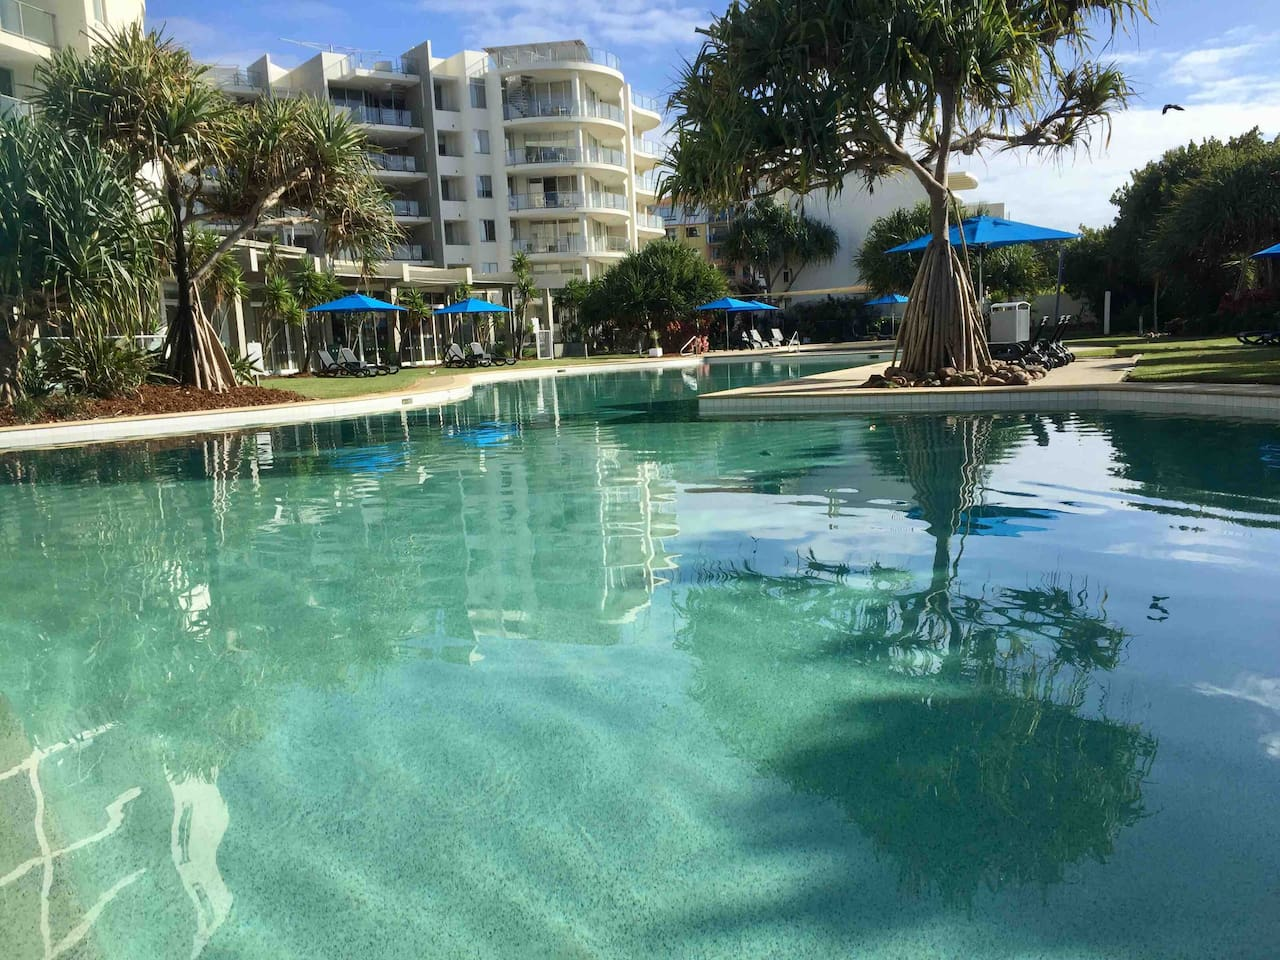 The amazing heated resort pool next to the bistro and beach